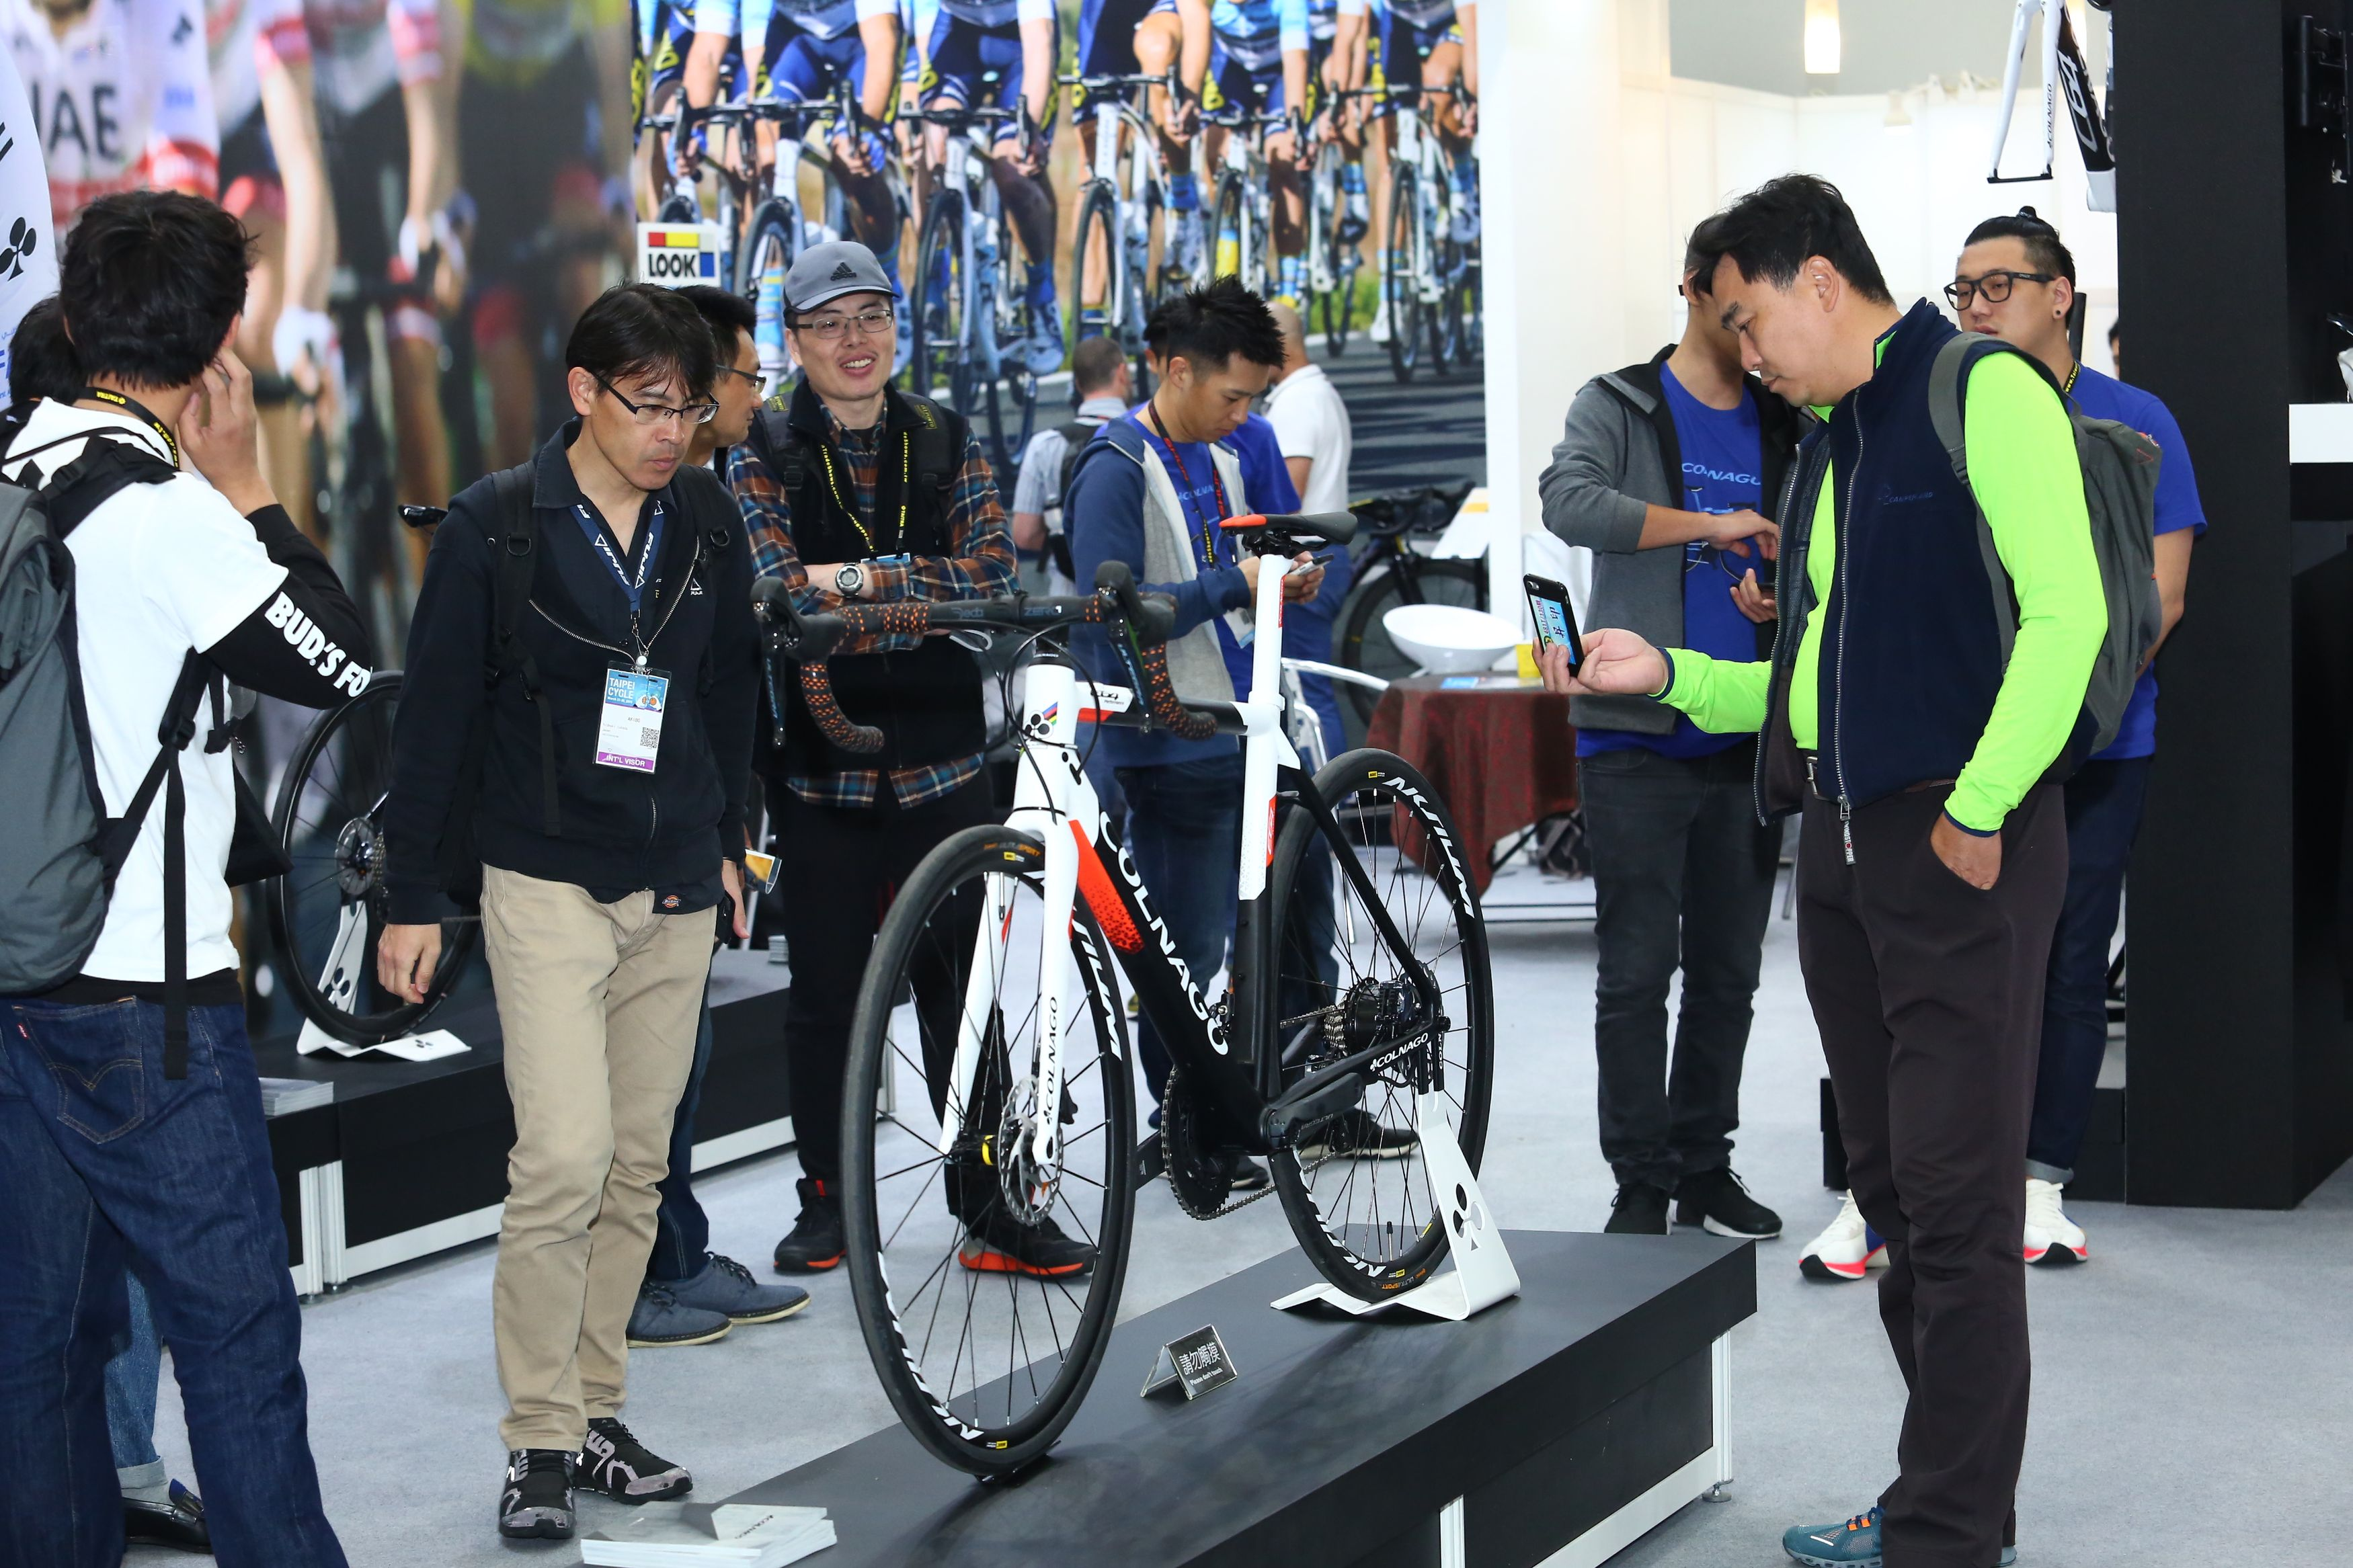 https://storage.googleapis.com/www.taiwantradeshow.com.tw/model/photo/CC/2019/PH00033608-name.jpg